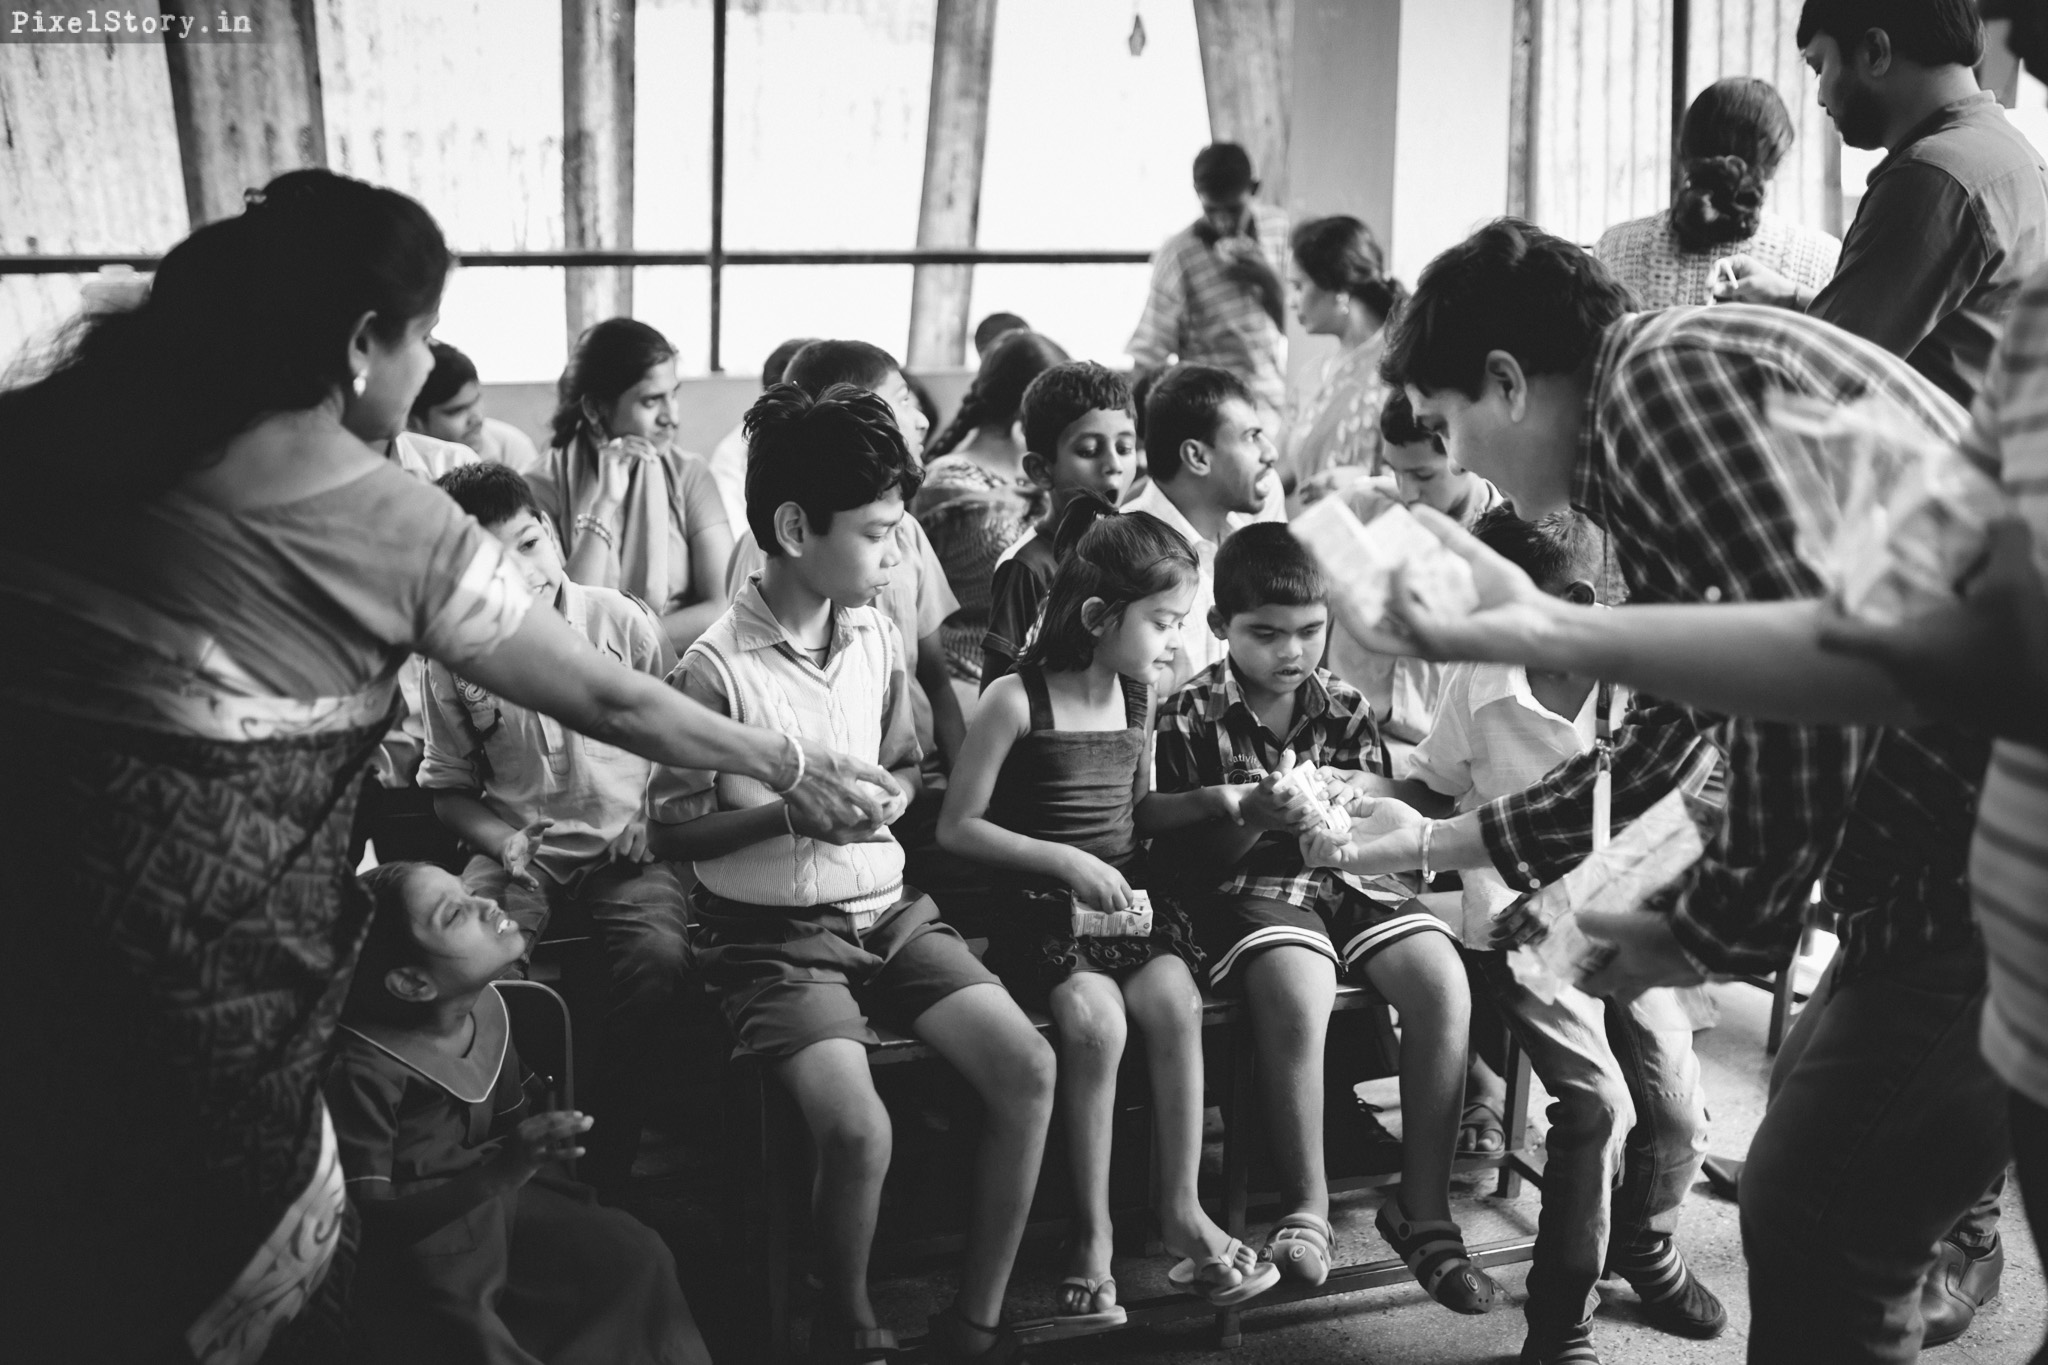 PixelStory-Orphanage-OldAge-Axis-Concentrix-35.jpg